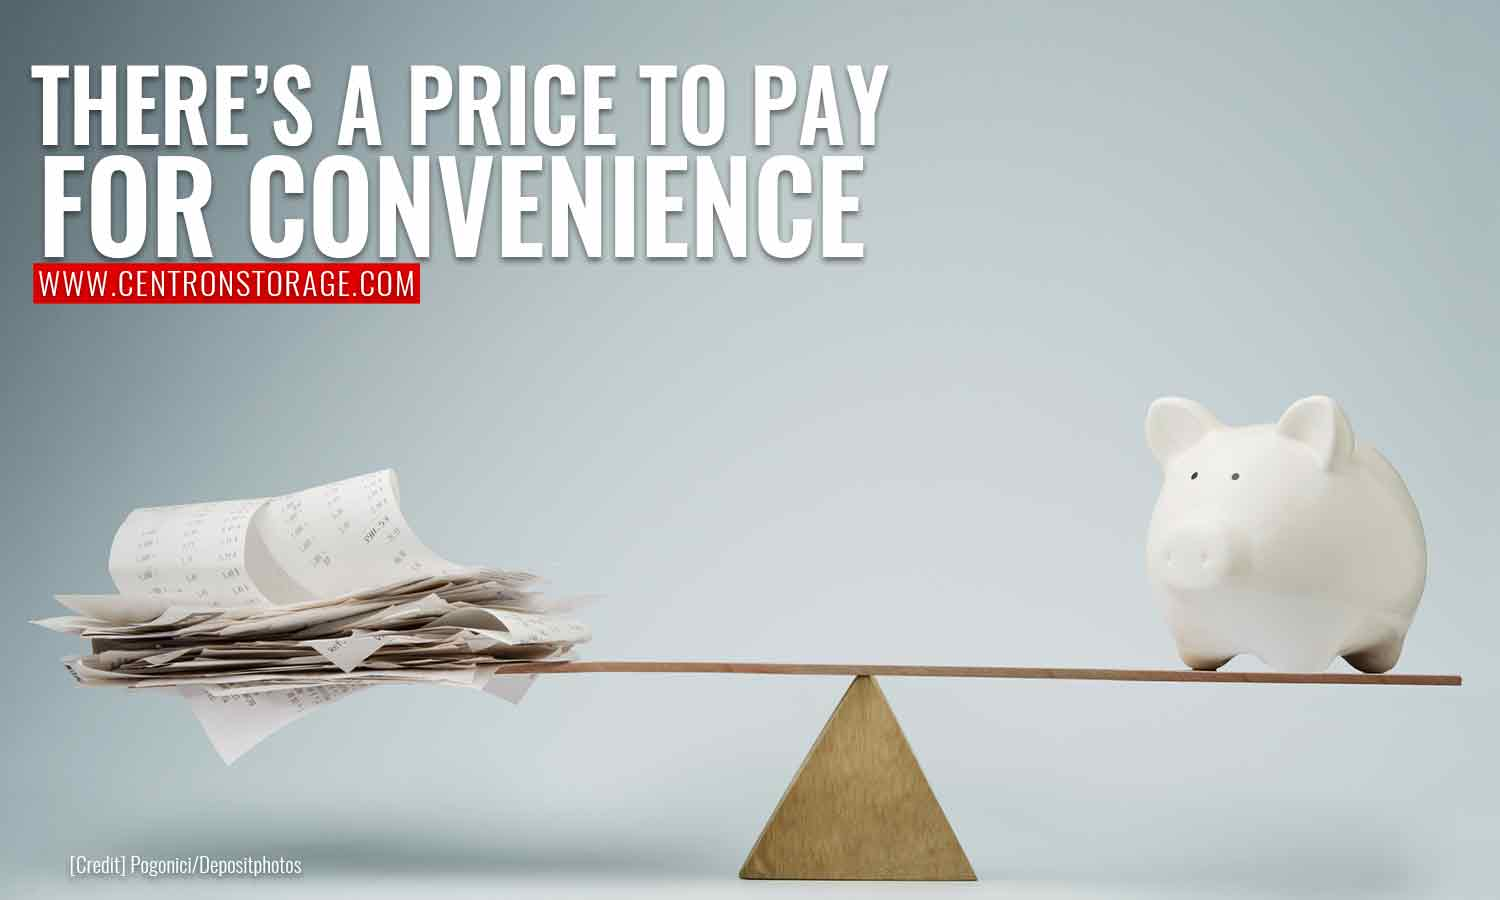 There's a price to pay for convenience